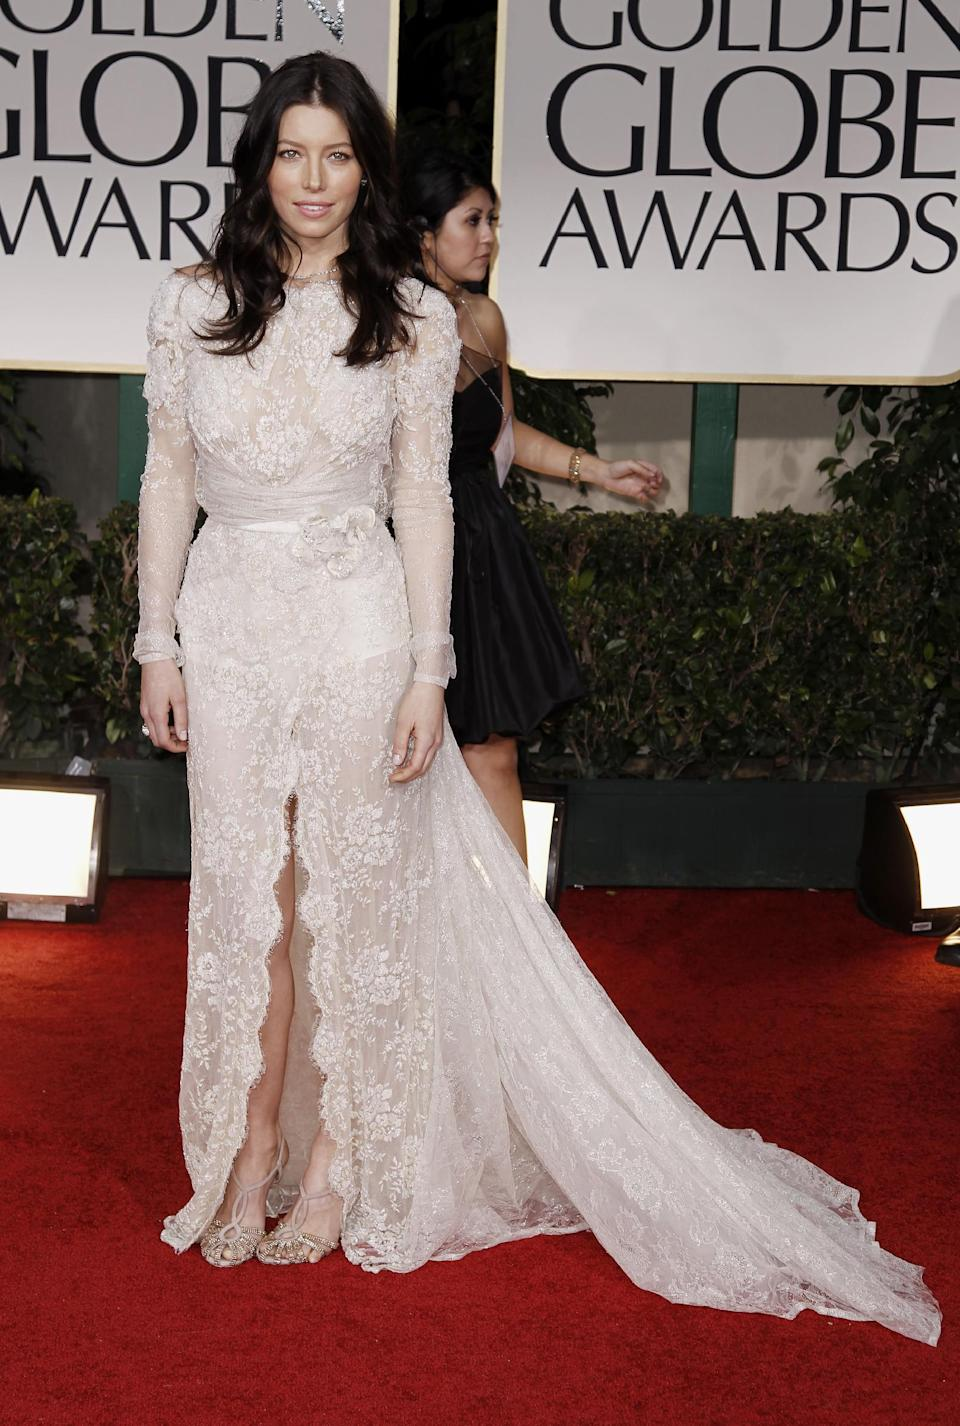 Jessica Biel arrives at the 69th Annual Golden Globe Awards Sunday, Jan. 15, 2012, in Los Angeles. (AP Photo/Matt Sayles)